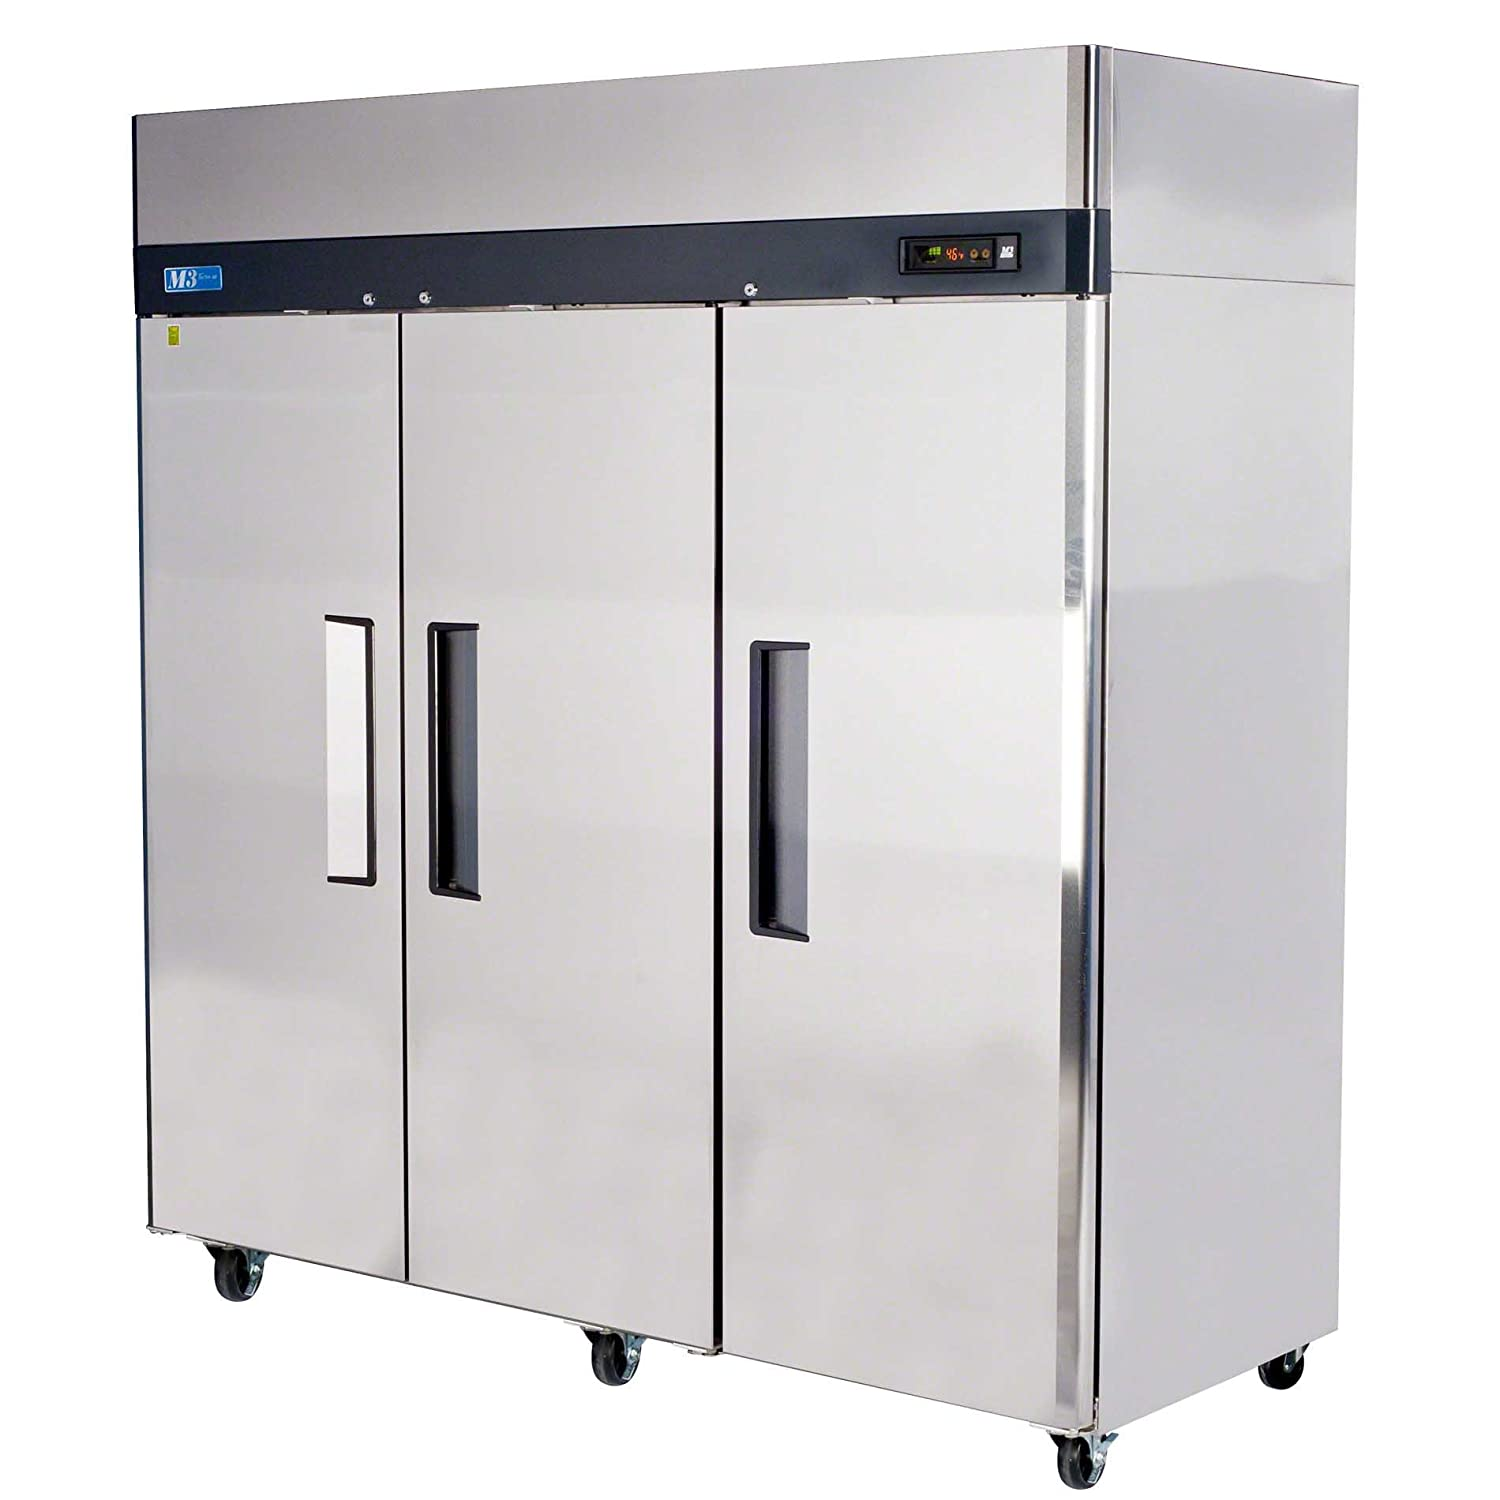 "Turbo Air (M3F72-3) - 78"" Reach-In Solid Door Freezer - M3 Series"